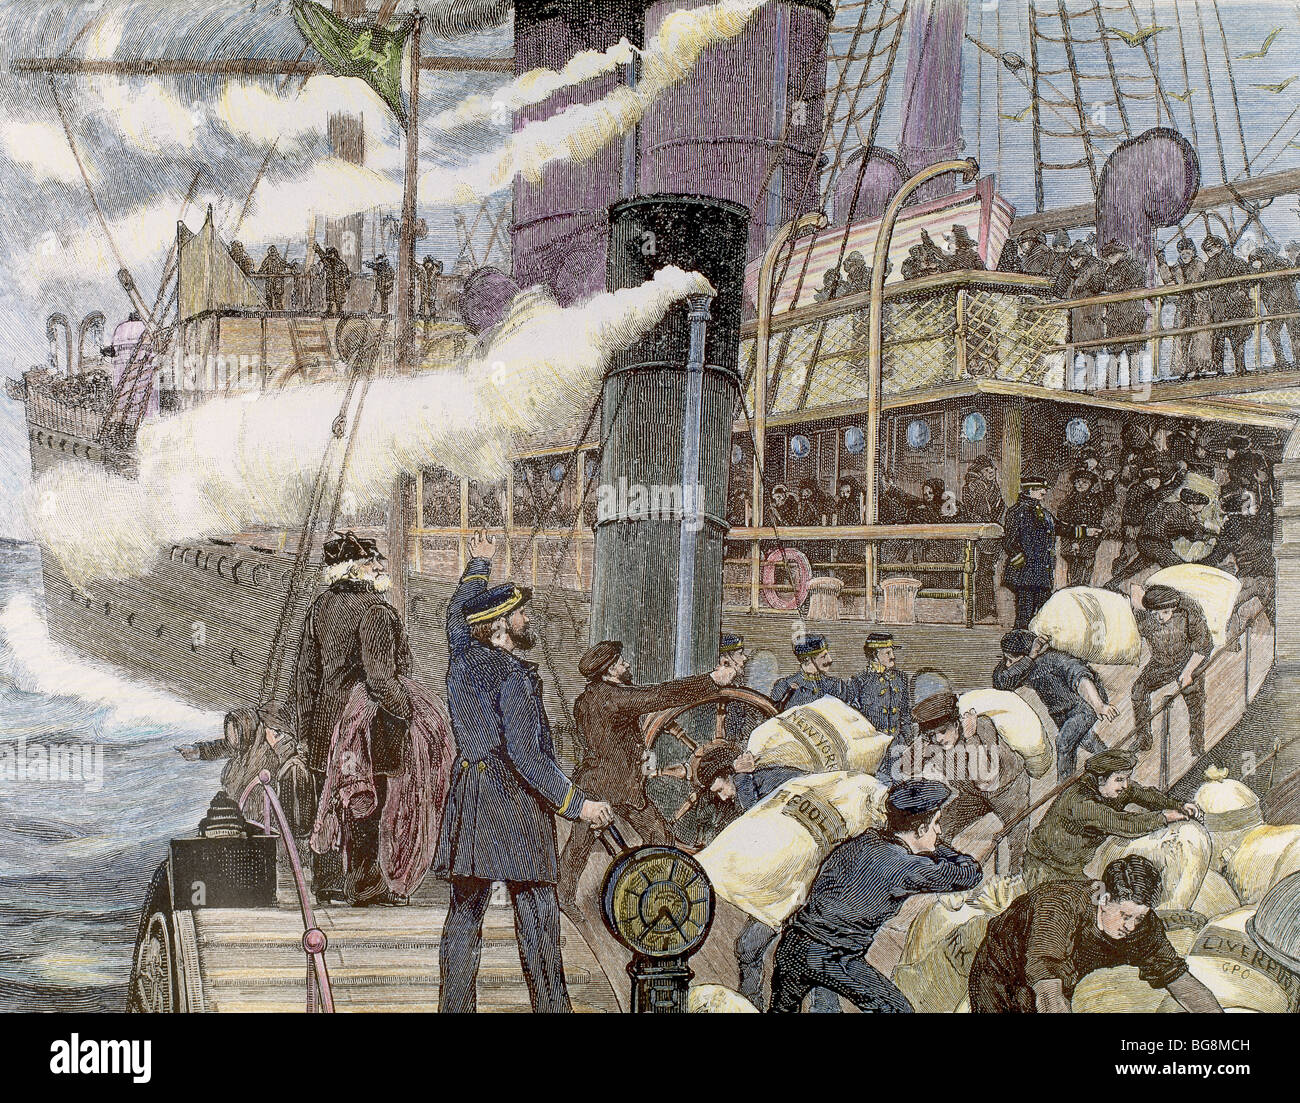 Whalers in action wood engraving published in 1855 stock illustration - Boat Carrying Goods In The Port Of London Xix Century Colored Engraving Stock